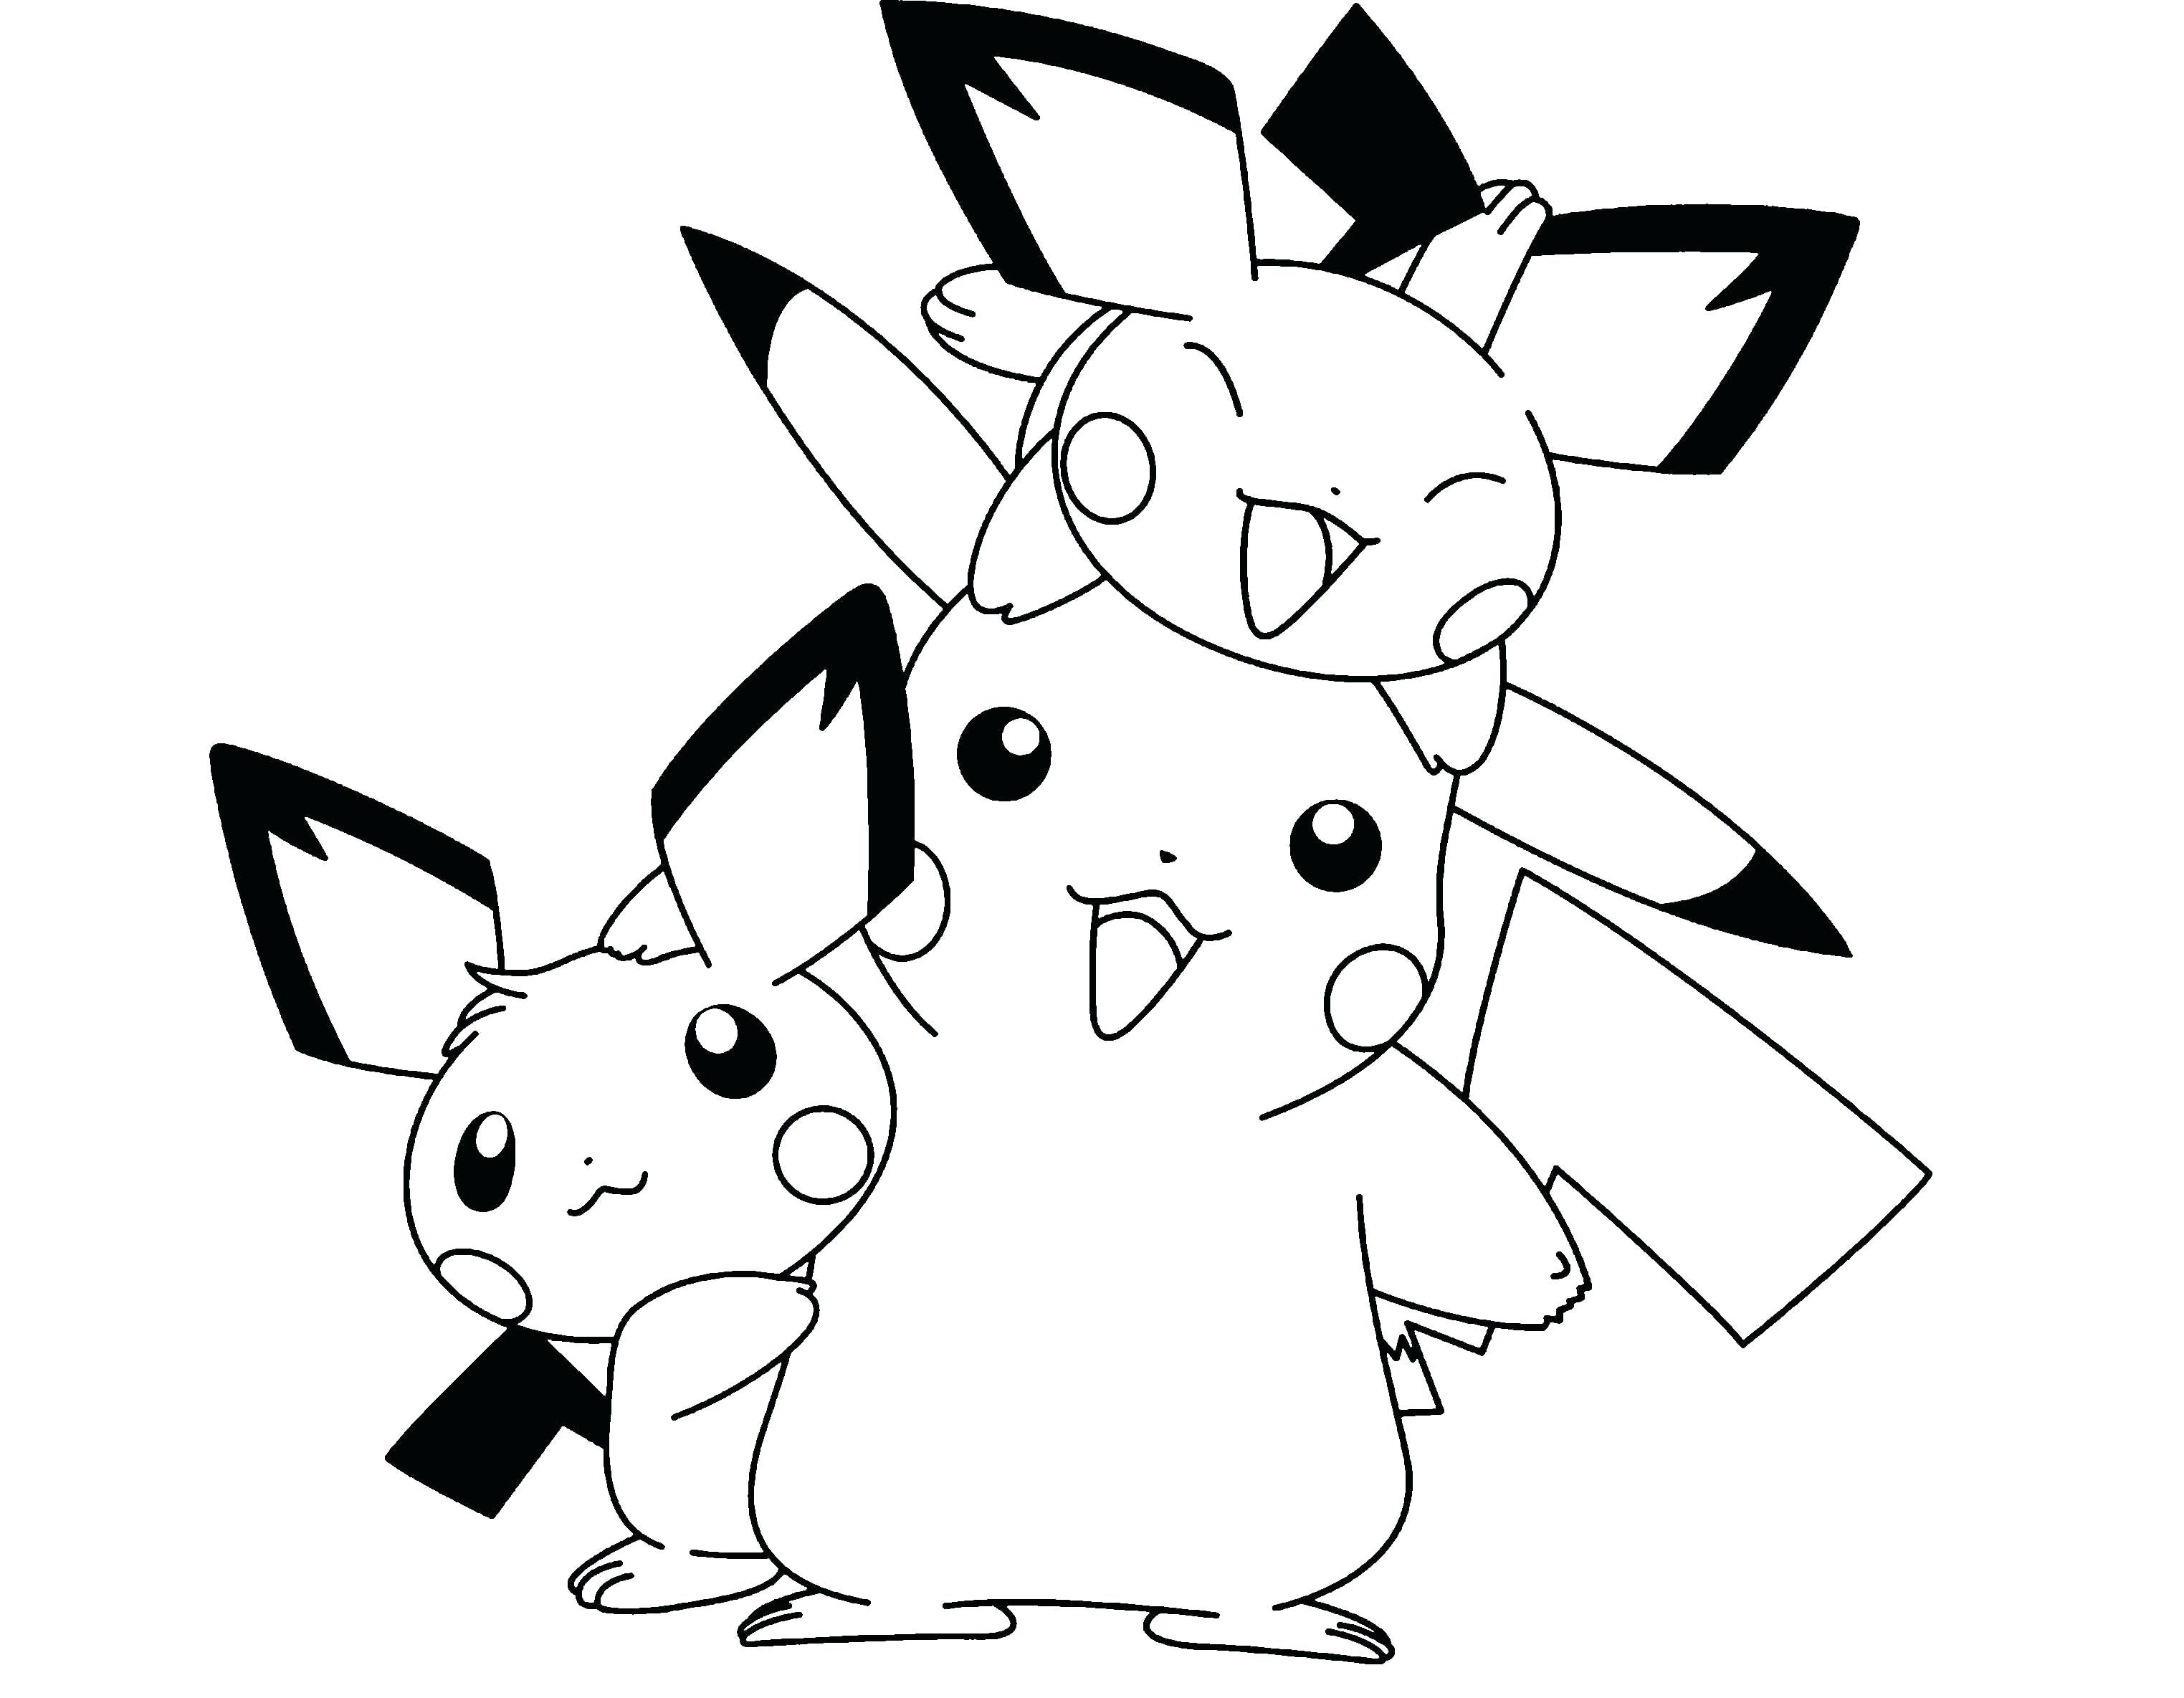 New Baby Pikachu Coloring Pages Download - coloring Coloring Pages